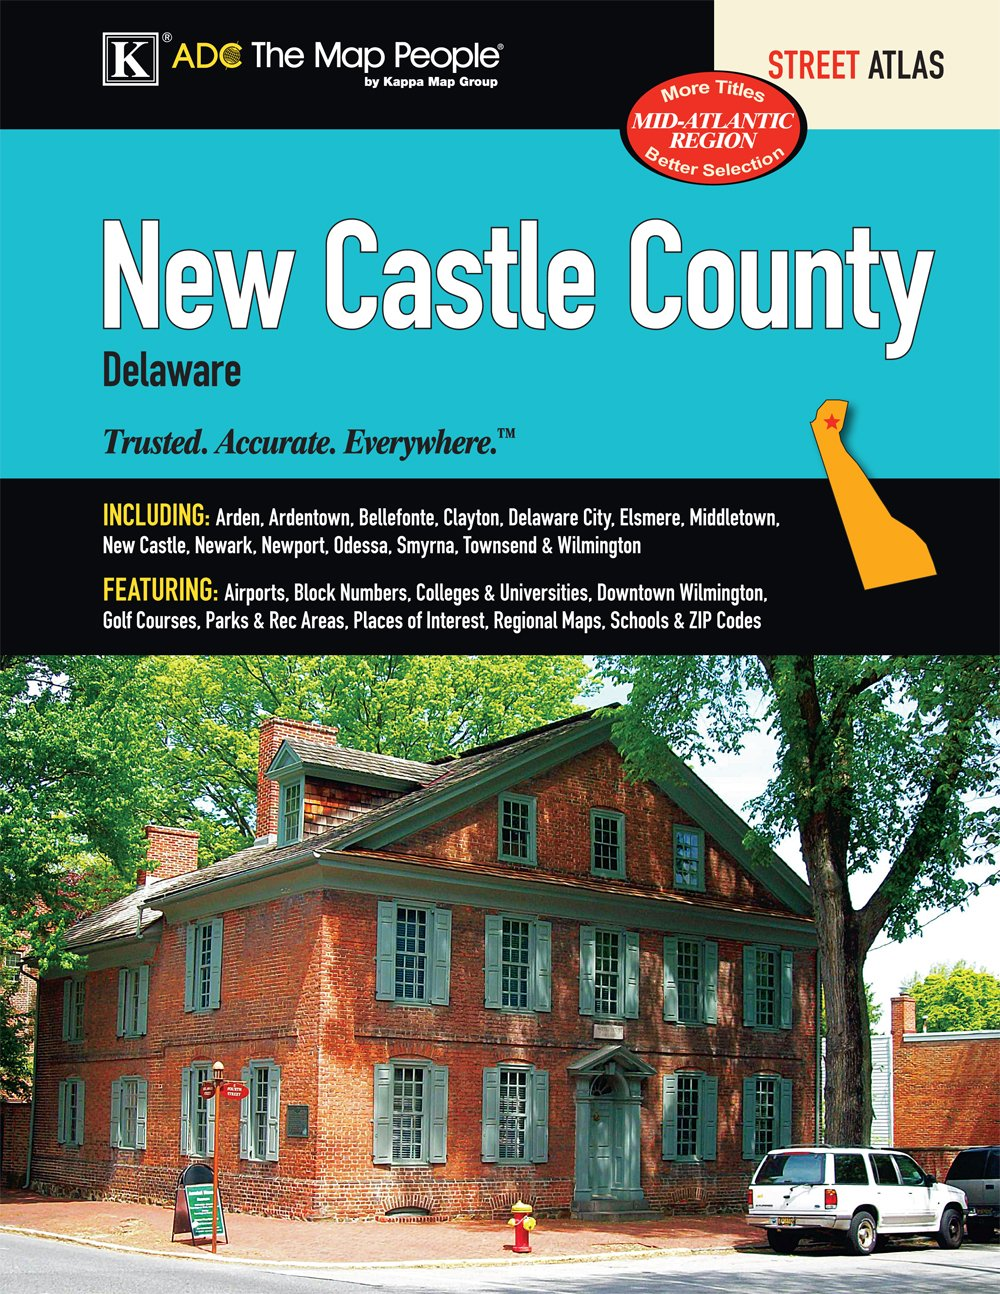 New Castle Delaware Street Atlas ADC The Map People 9780762573431